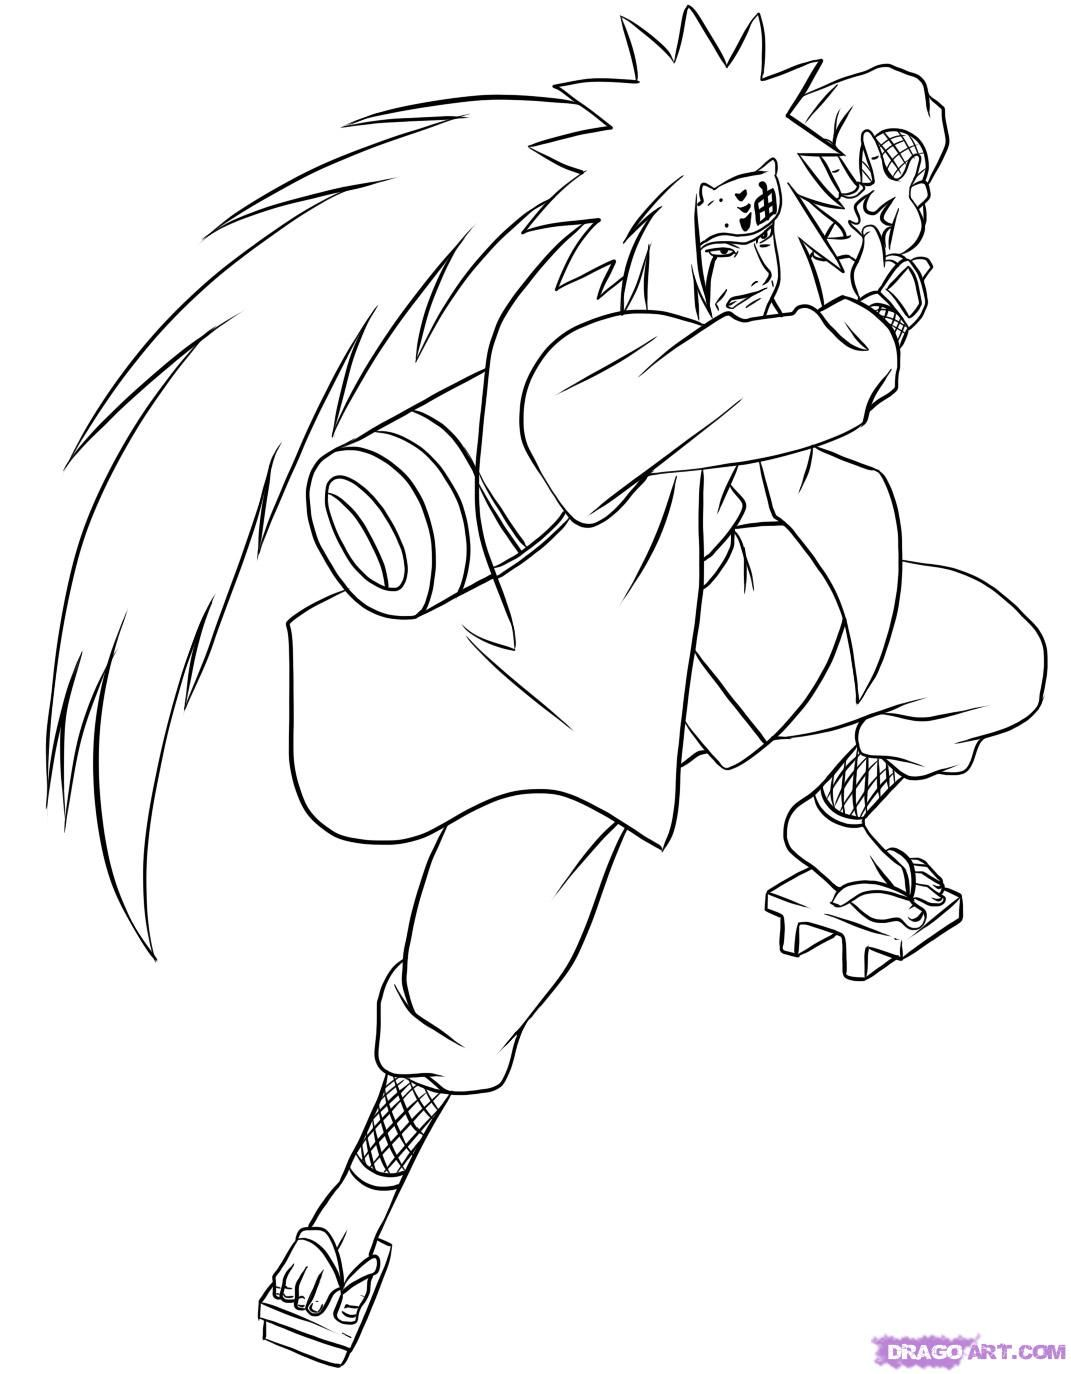 Naruto Coloring pages | Coloring Pages of Epicness | Pinterest | Malen